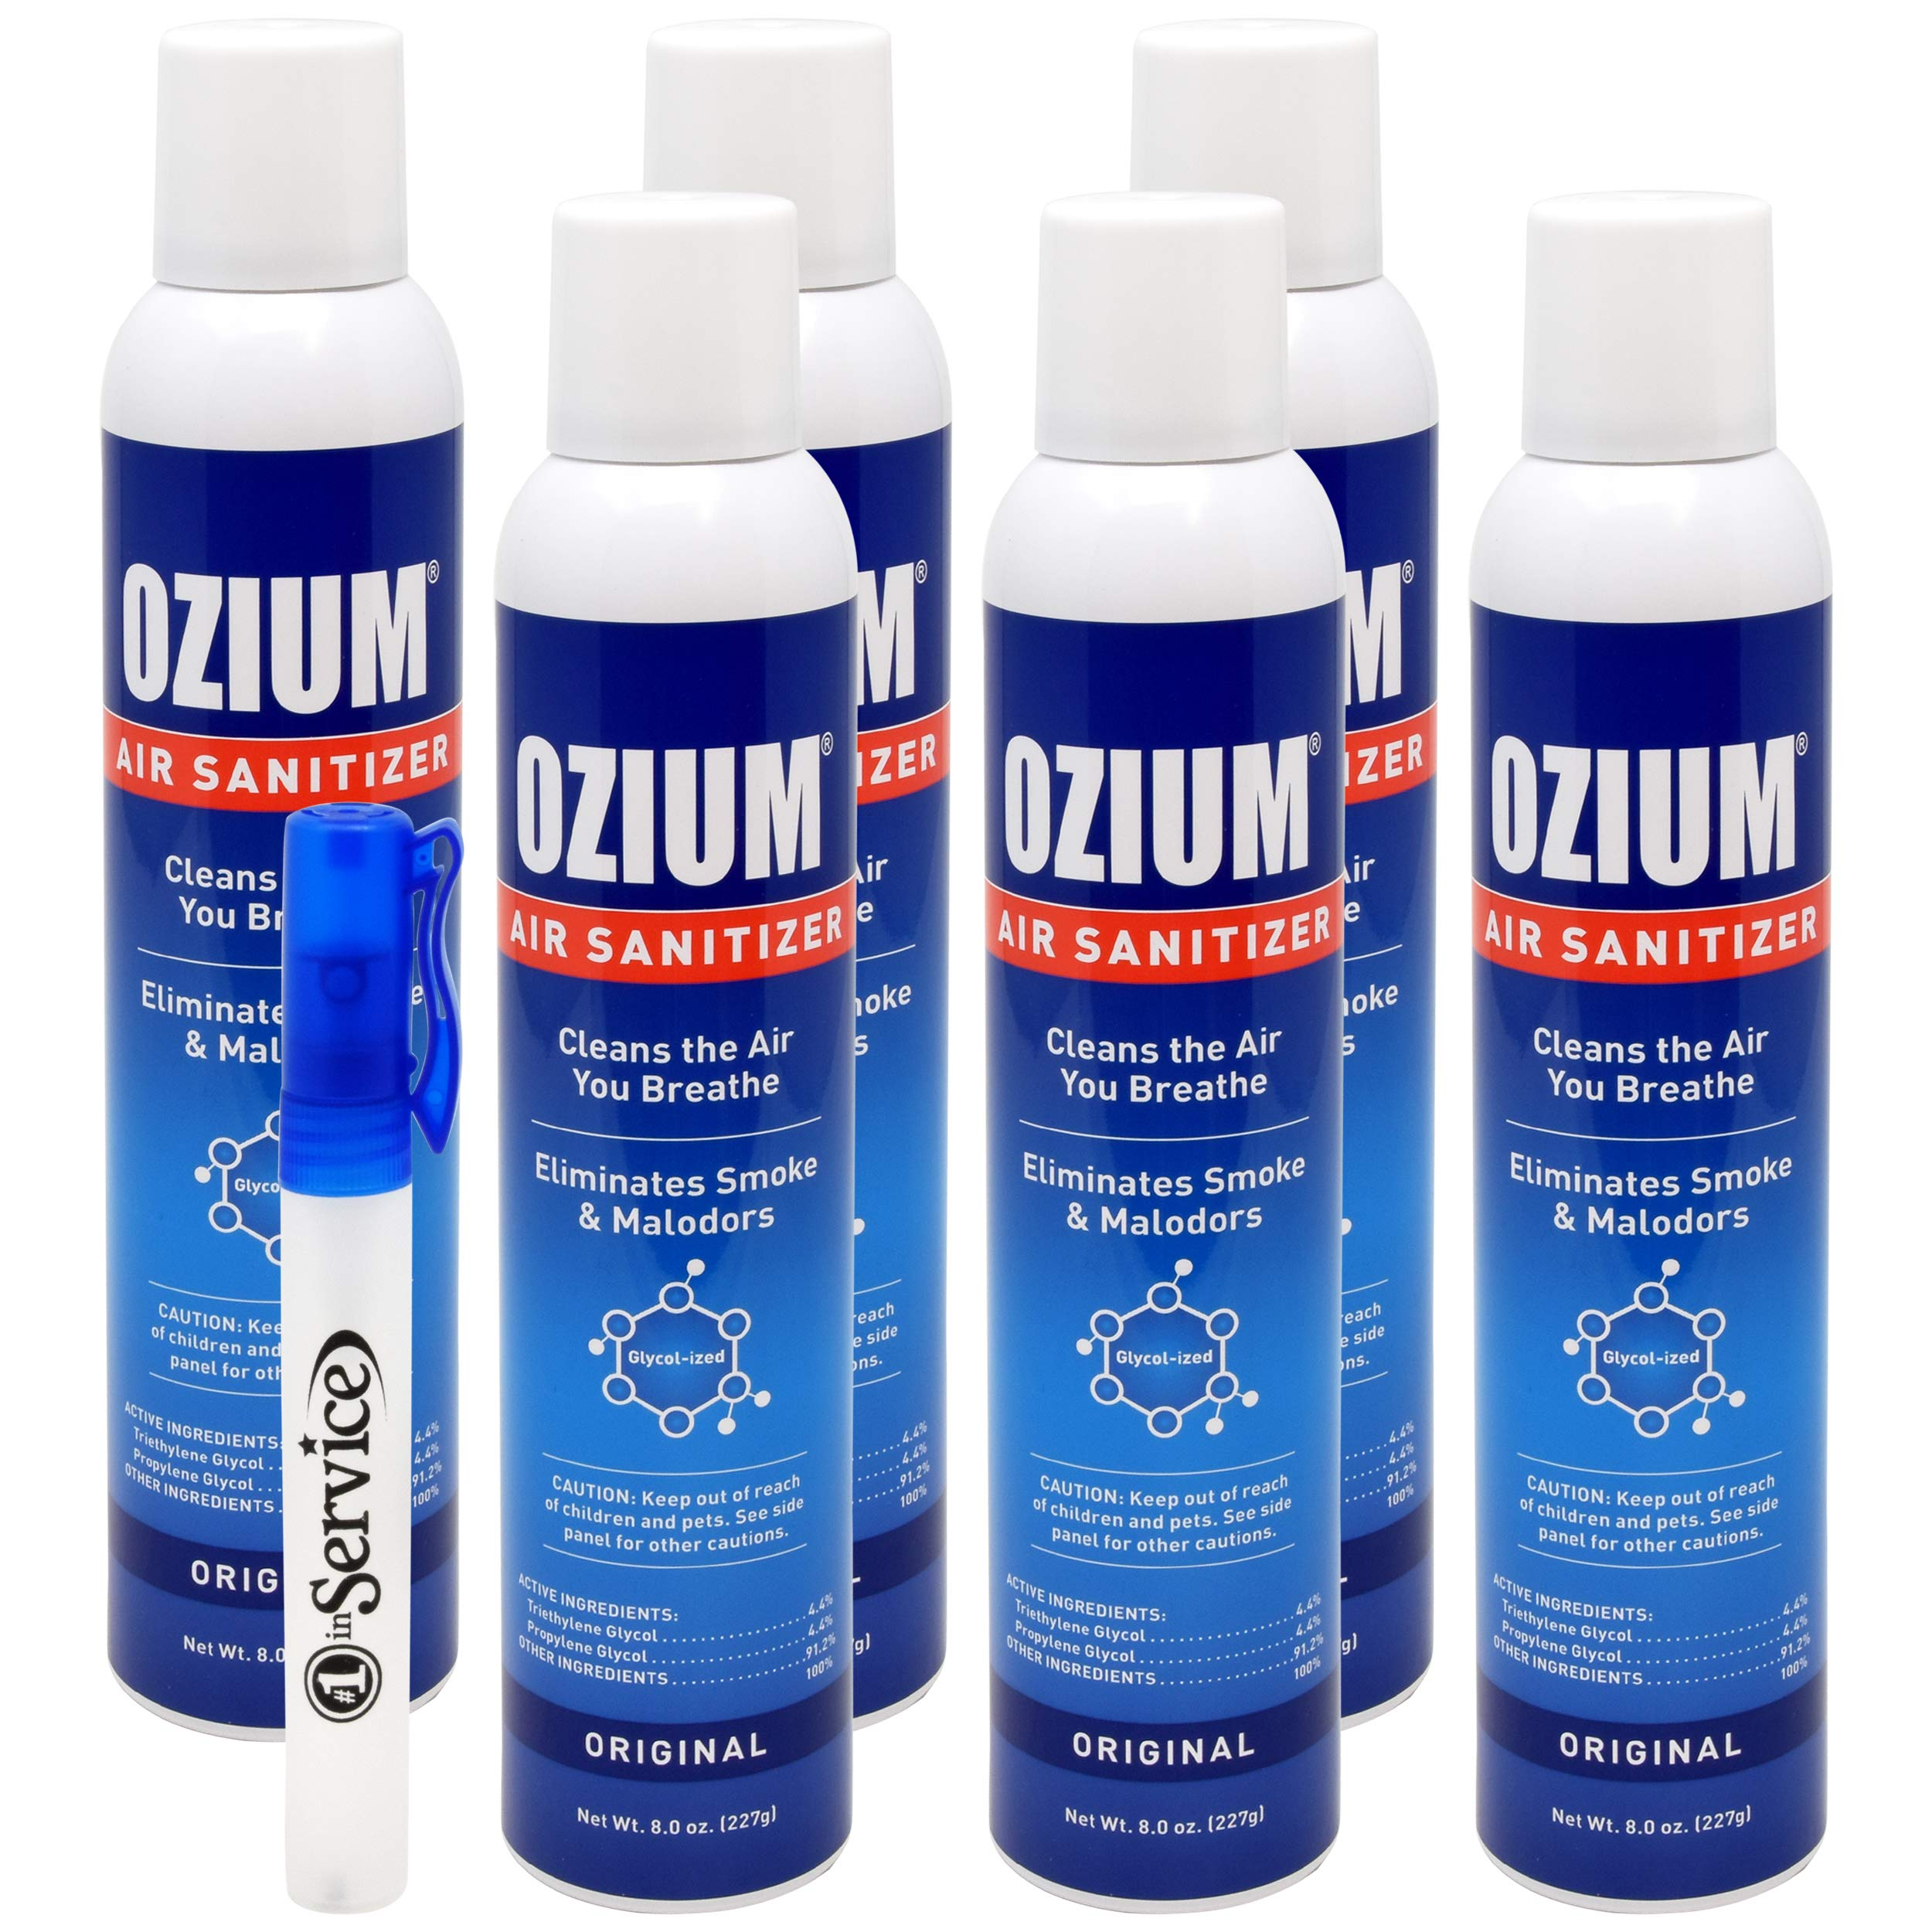 Ozium Air Sanitizer Reduces Airborne Bacteria Eliminates Smoke & Malodors 8oz Spray Air Freshener, Original (6 Pack) Hand Sanitizer Included